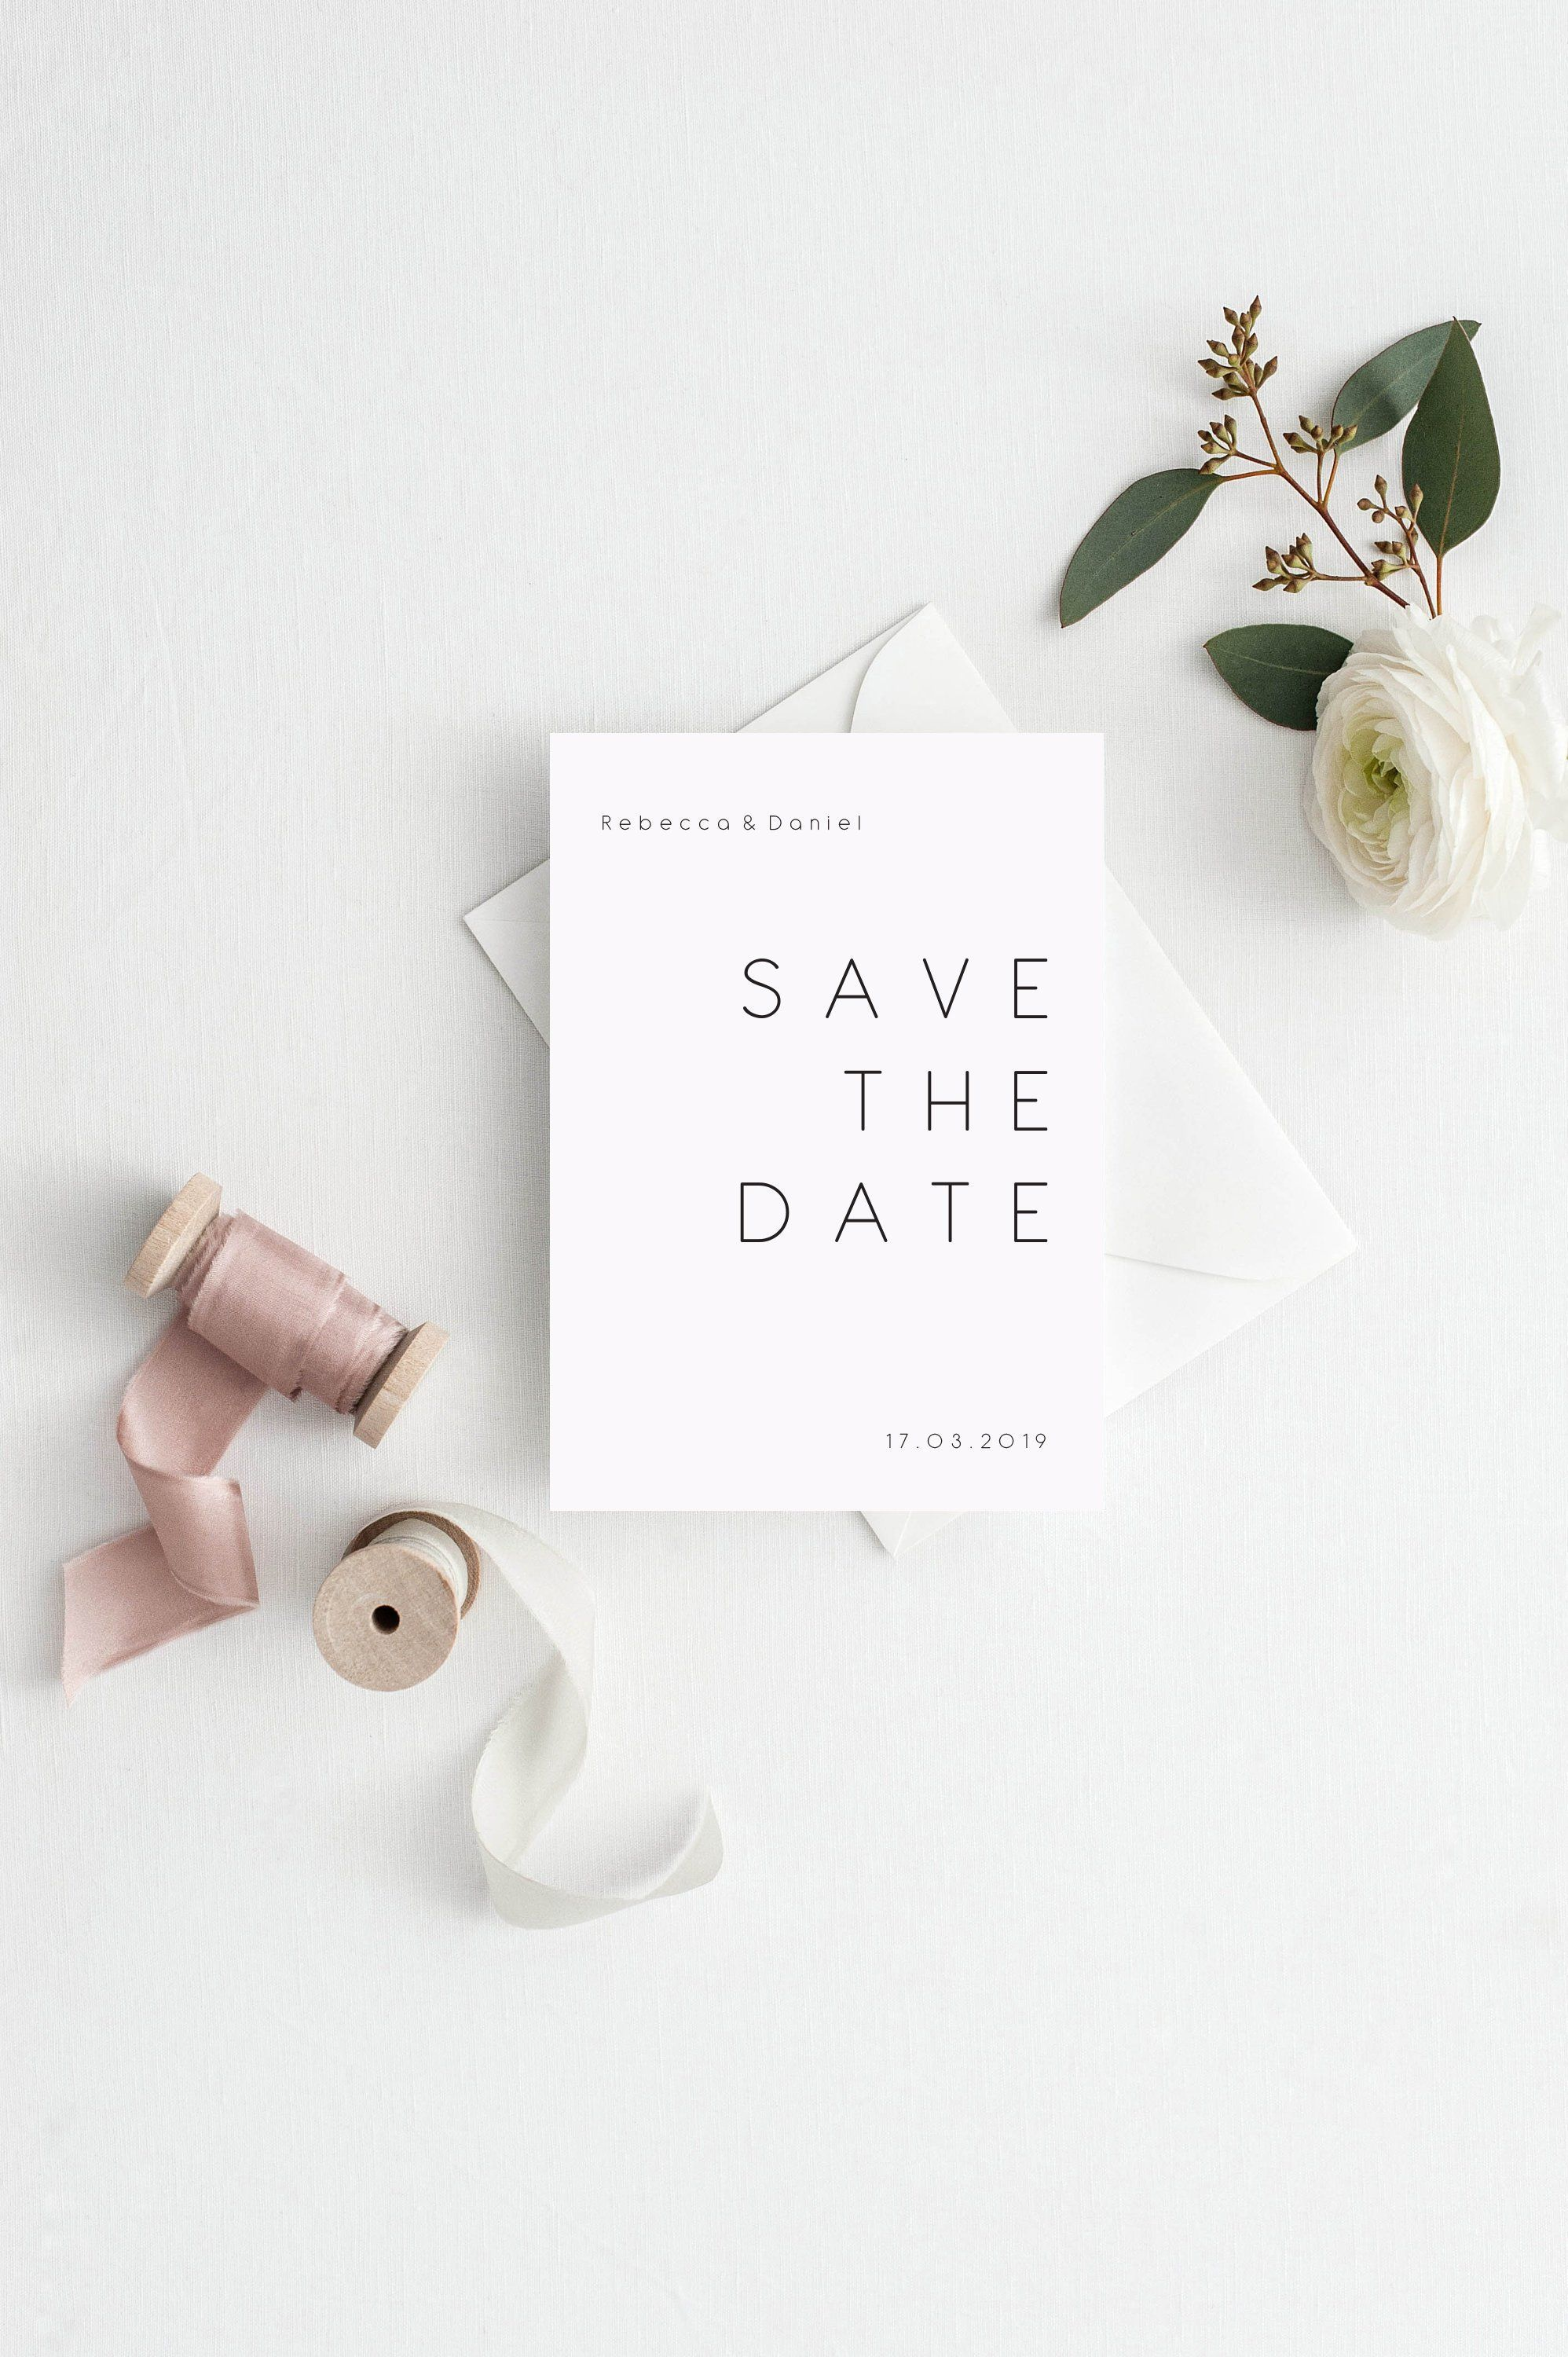 Diy wedding invitations are a popular choice so the options for diy wedding invitation ideas are endless